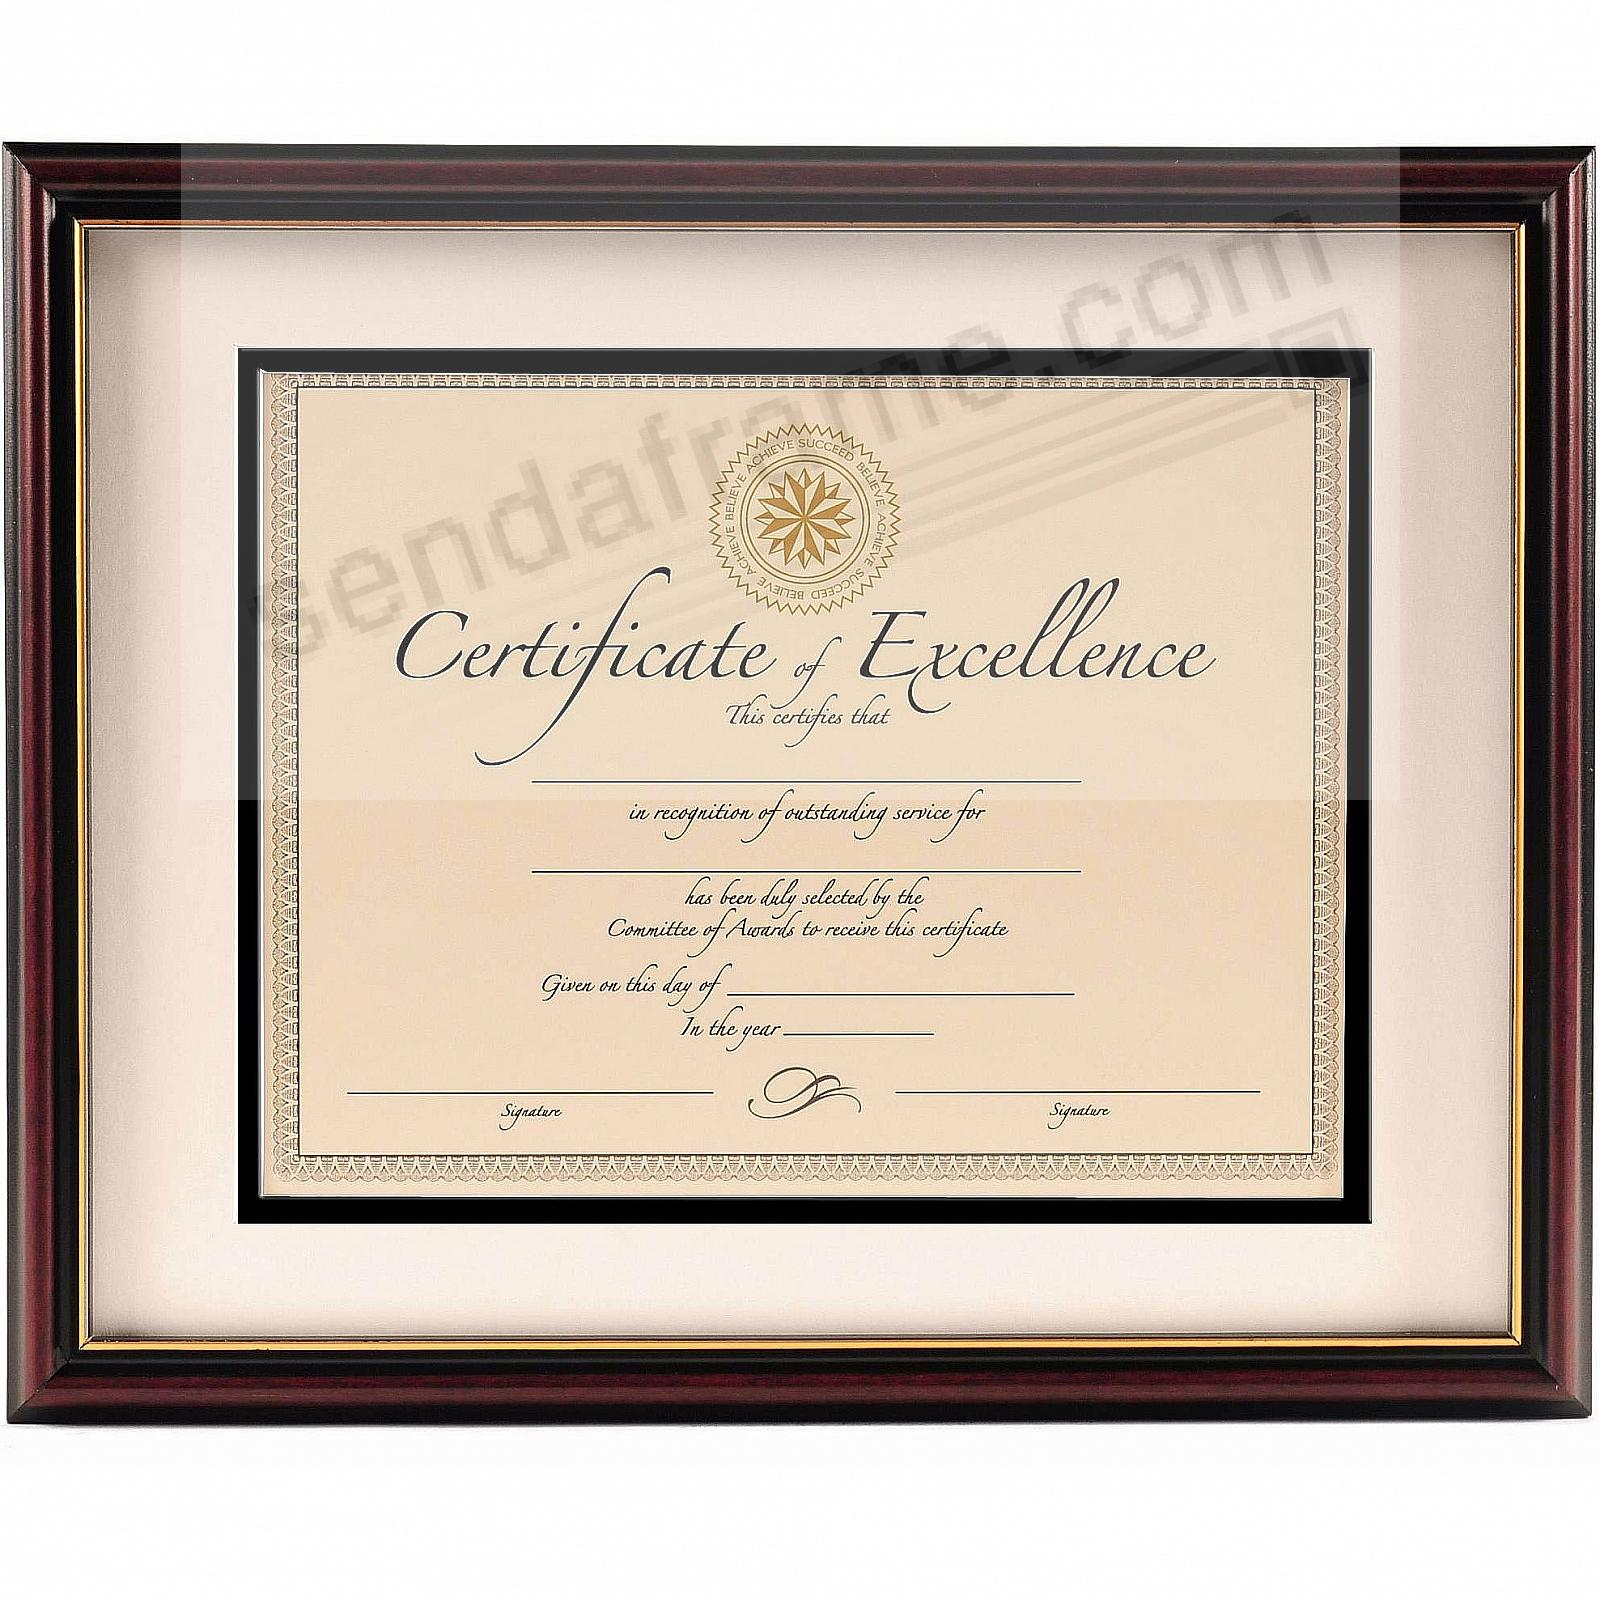 Cambridge document frame 11x148x11 by daxintercraft picture cambridge document frame 11x148x11 by daxintercraft jeuxipadfo Images